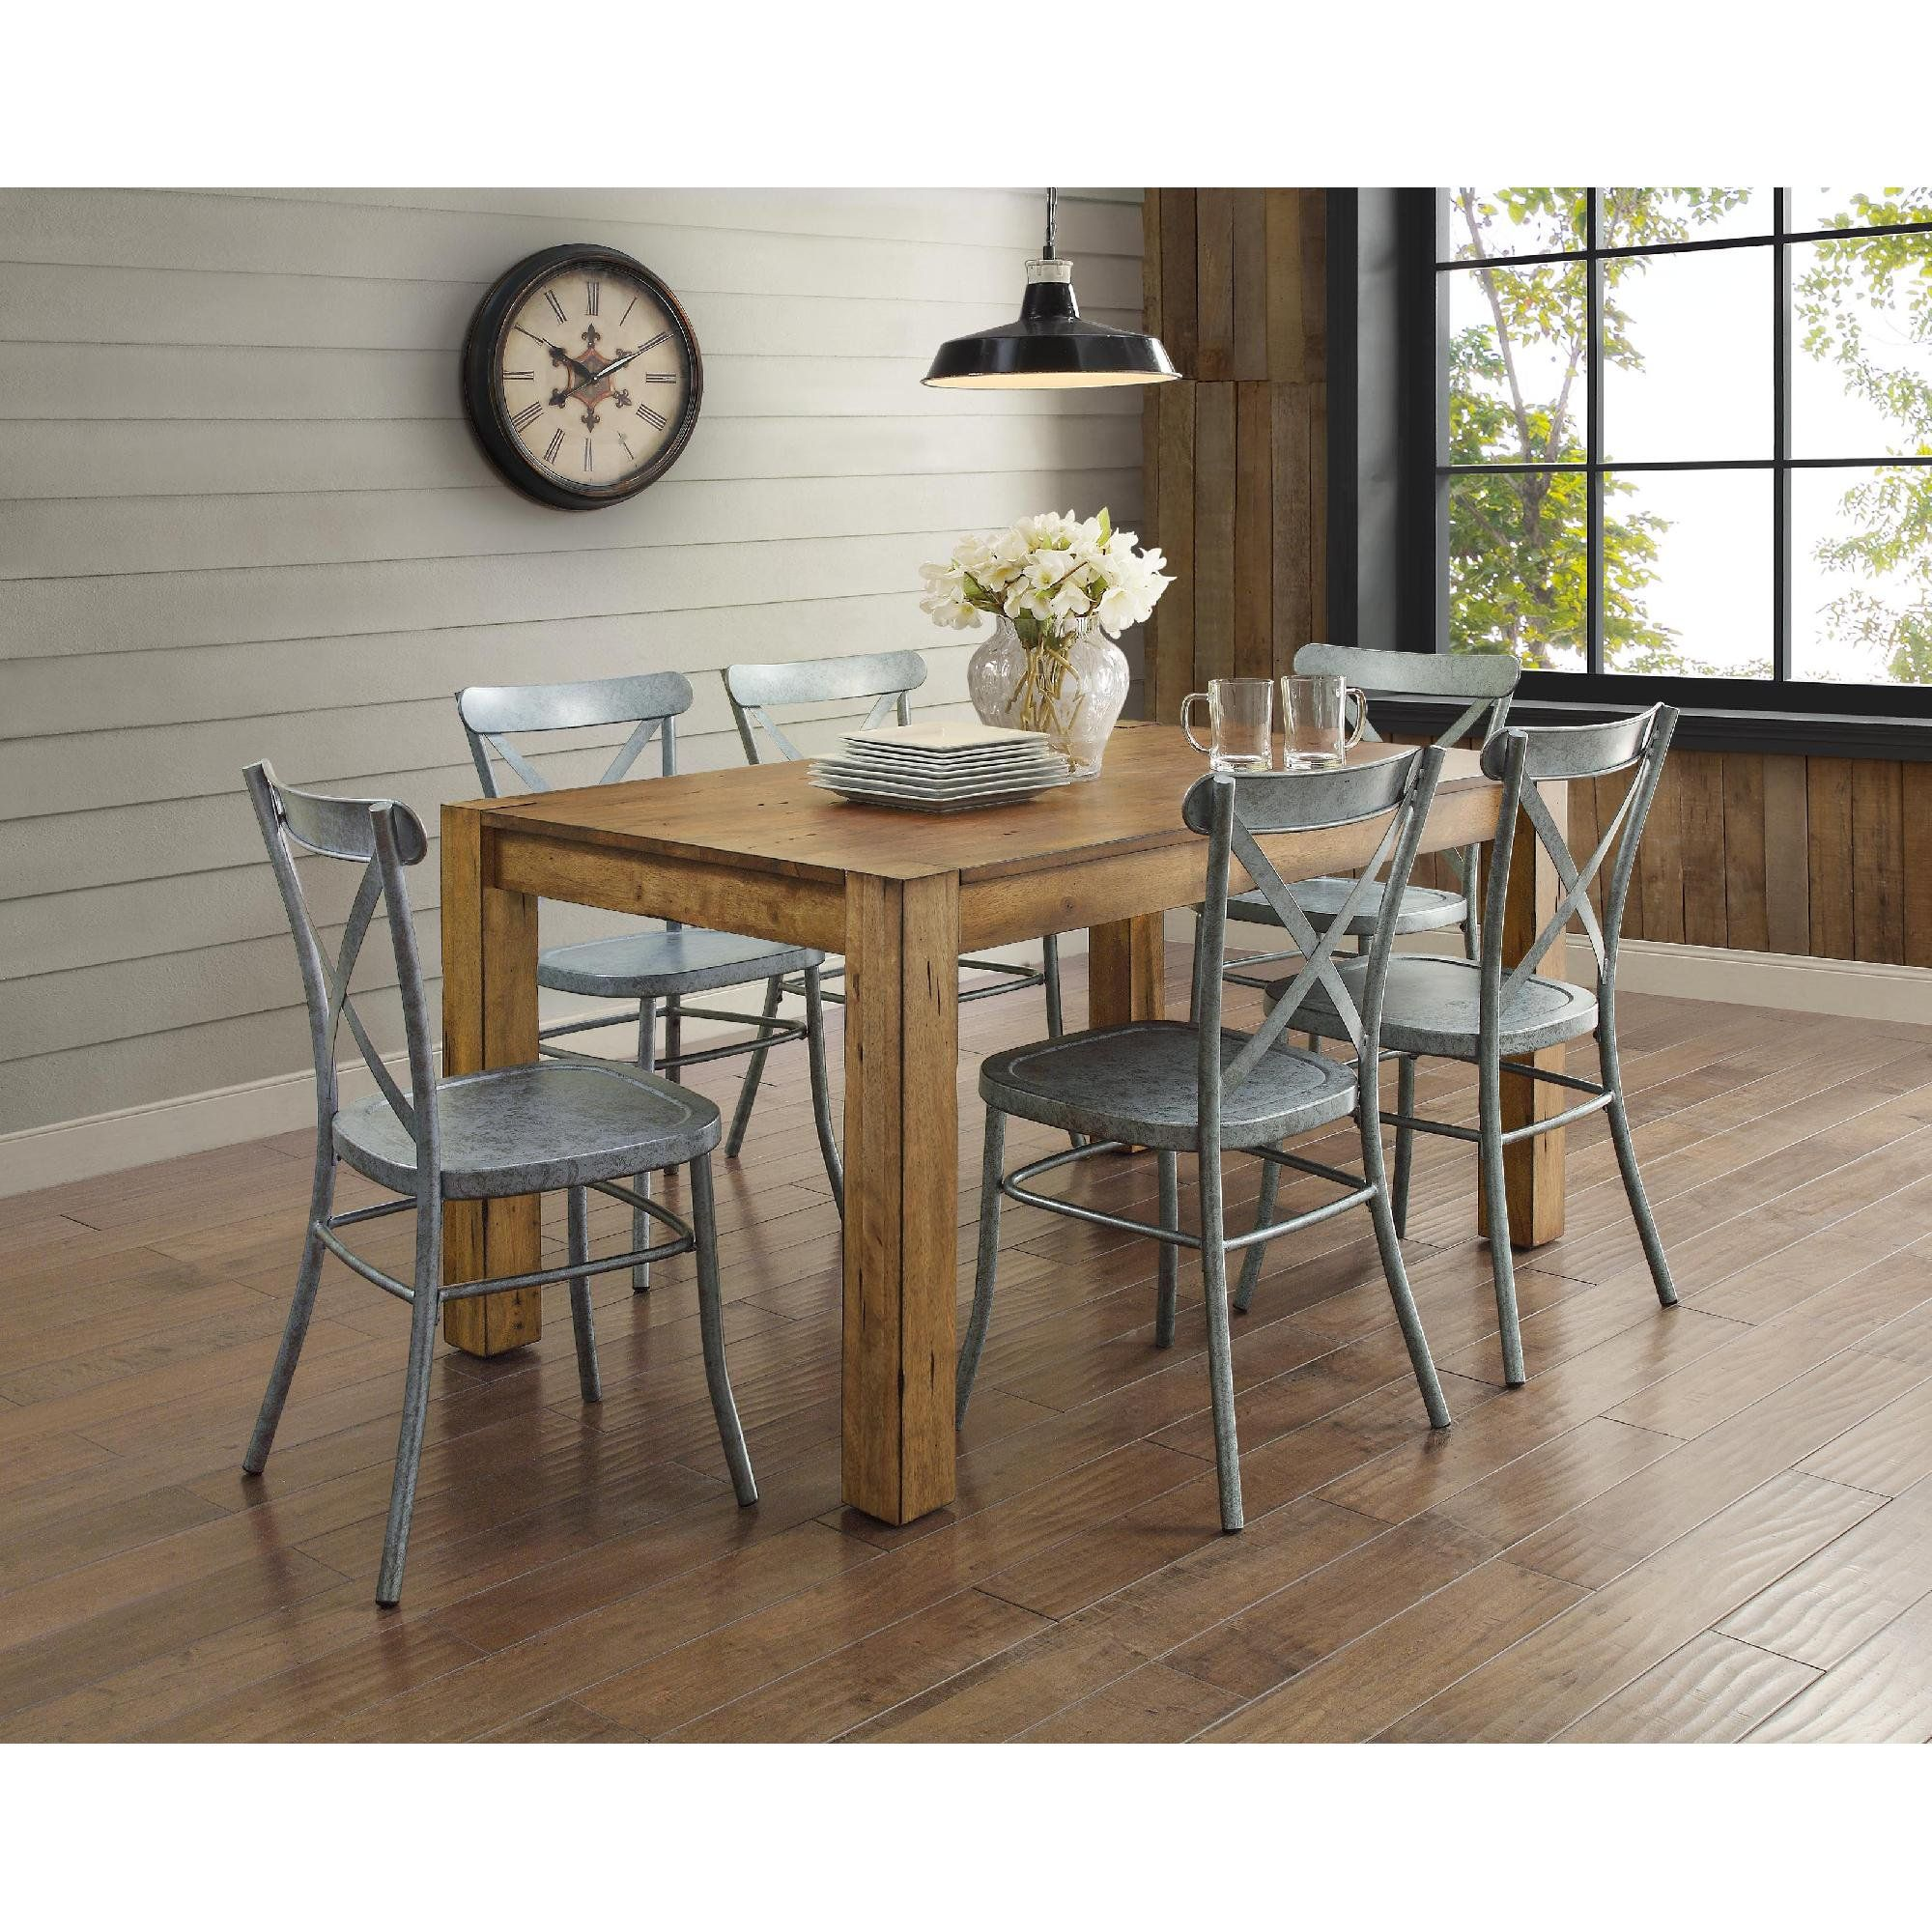 Better homes and gardens collin distressed dining chair